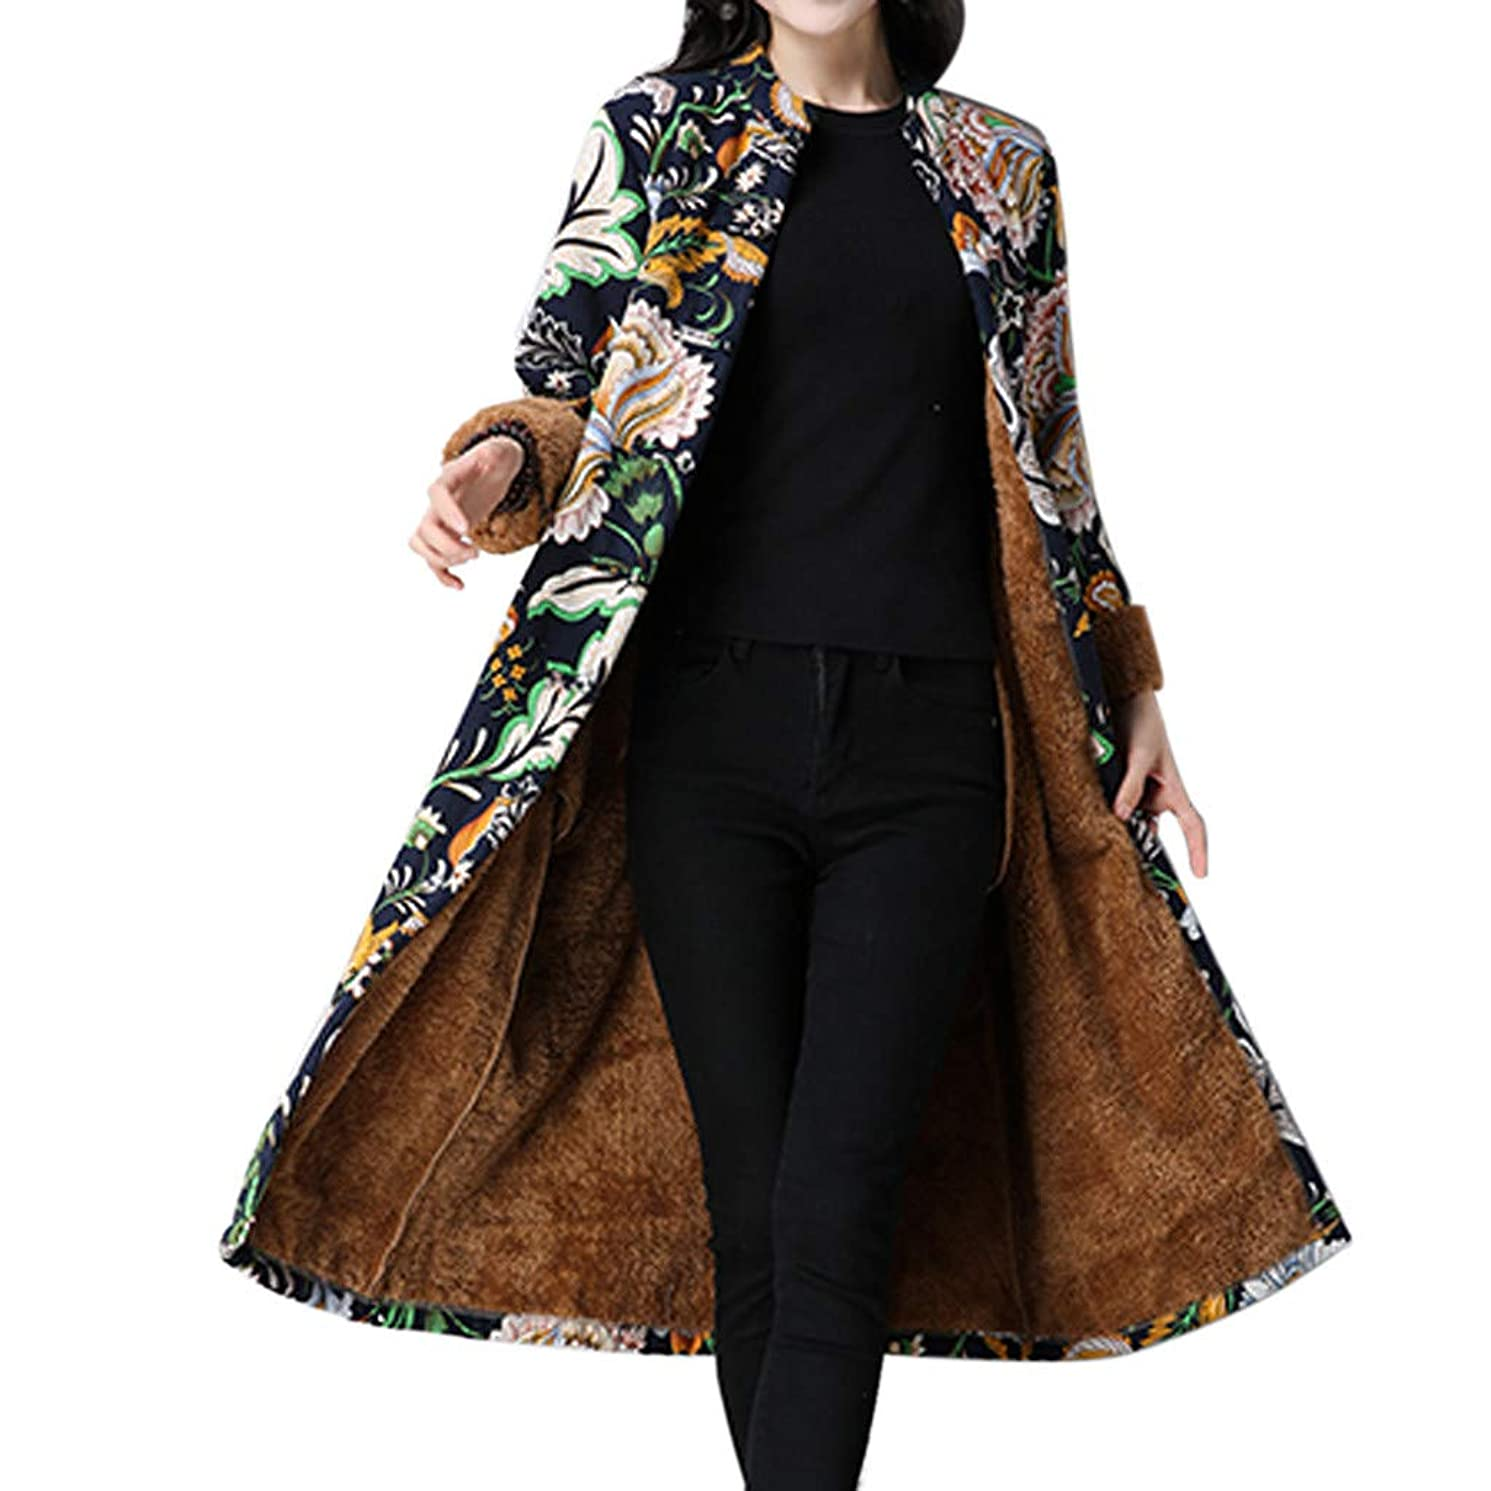 JOFOW Womens Shirt Jacket Long Cardigans Flowers Print Ethnic Fleece Lined Warm Loose Coats Plus Size